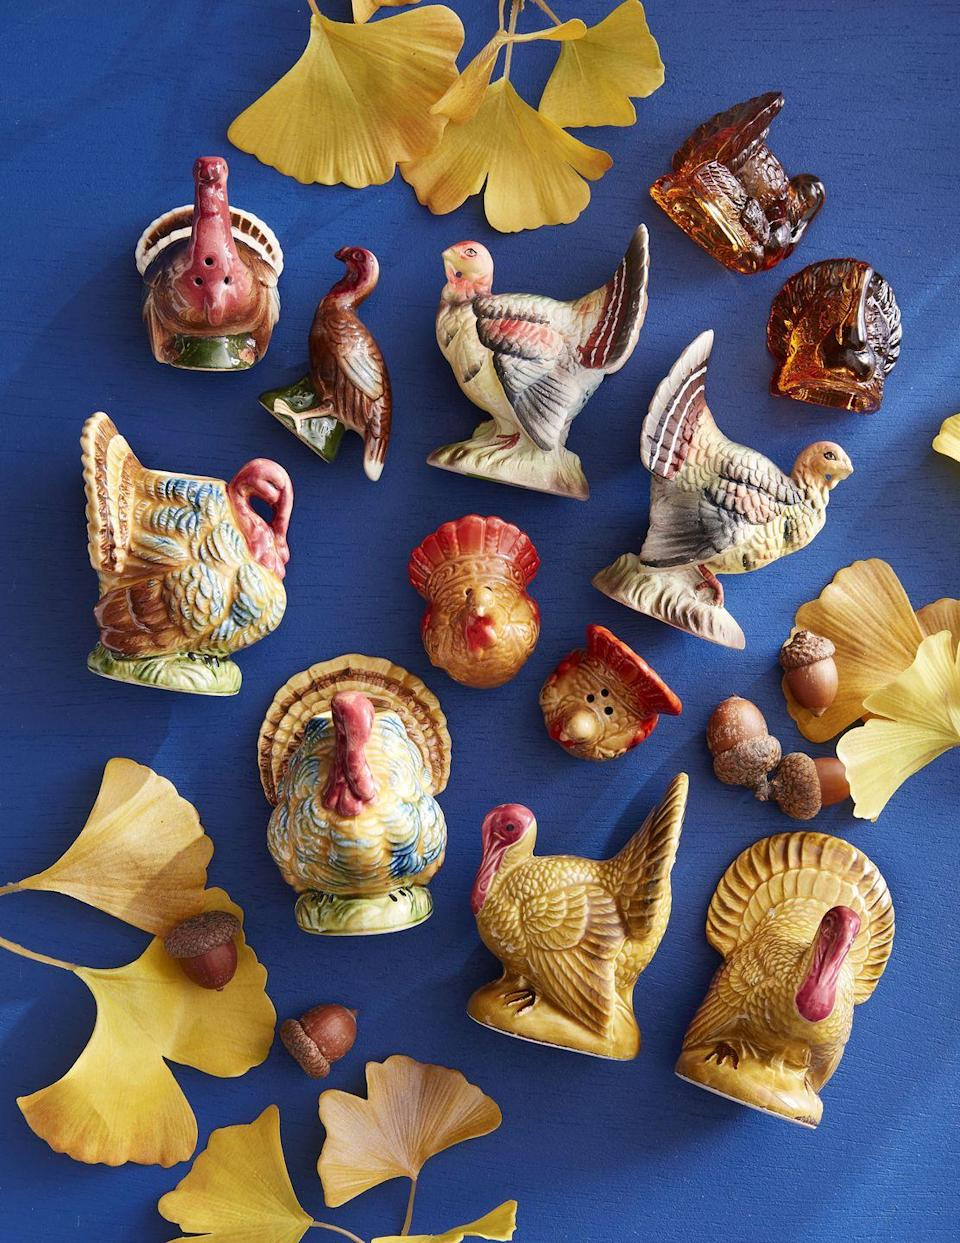 """<p>Feather your table with these turkey-shaped collections. Add fall-colored taper candles for a beautiful centerpiece.</p><p><a class=""""link rapid-noclick-resp"""" href=""""https://go.redirectingat.com?id=74968X1596630&url=https%3A%2F%2Fwww.etsy.com%2Flisting%2F882441593%2Fhand-painted-ceramic-thanksgiving-turkey%3Fga_order%3Dmost_relevant%26ga_search_type%3Dall%26ga_view_type%3Dgallery%26ga_search_query%3Dturkey%2Bsalt%2Band%2Bpepper%26ref%3Dsr_gallery-1-4%26organic_search_click%3D1%26frs%3D1&sref=https%3A%2F%2Fwww.countryliving.com%2Fentertaining%2Fg2130%2Fthanksgiving-centerpieces%2F"""" rel=""""nofollow noopener"""" target=""""_blank"""" data-ylk=""""slk:SHOP SHAKERS"""">SHOP SHAKERS</a></p>"""